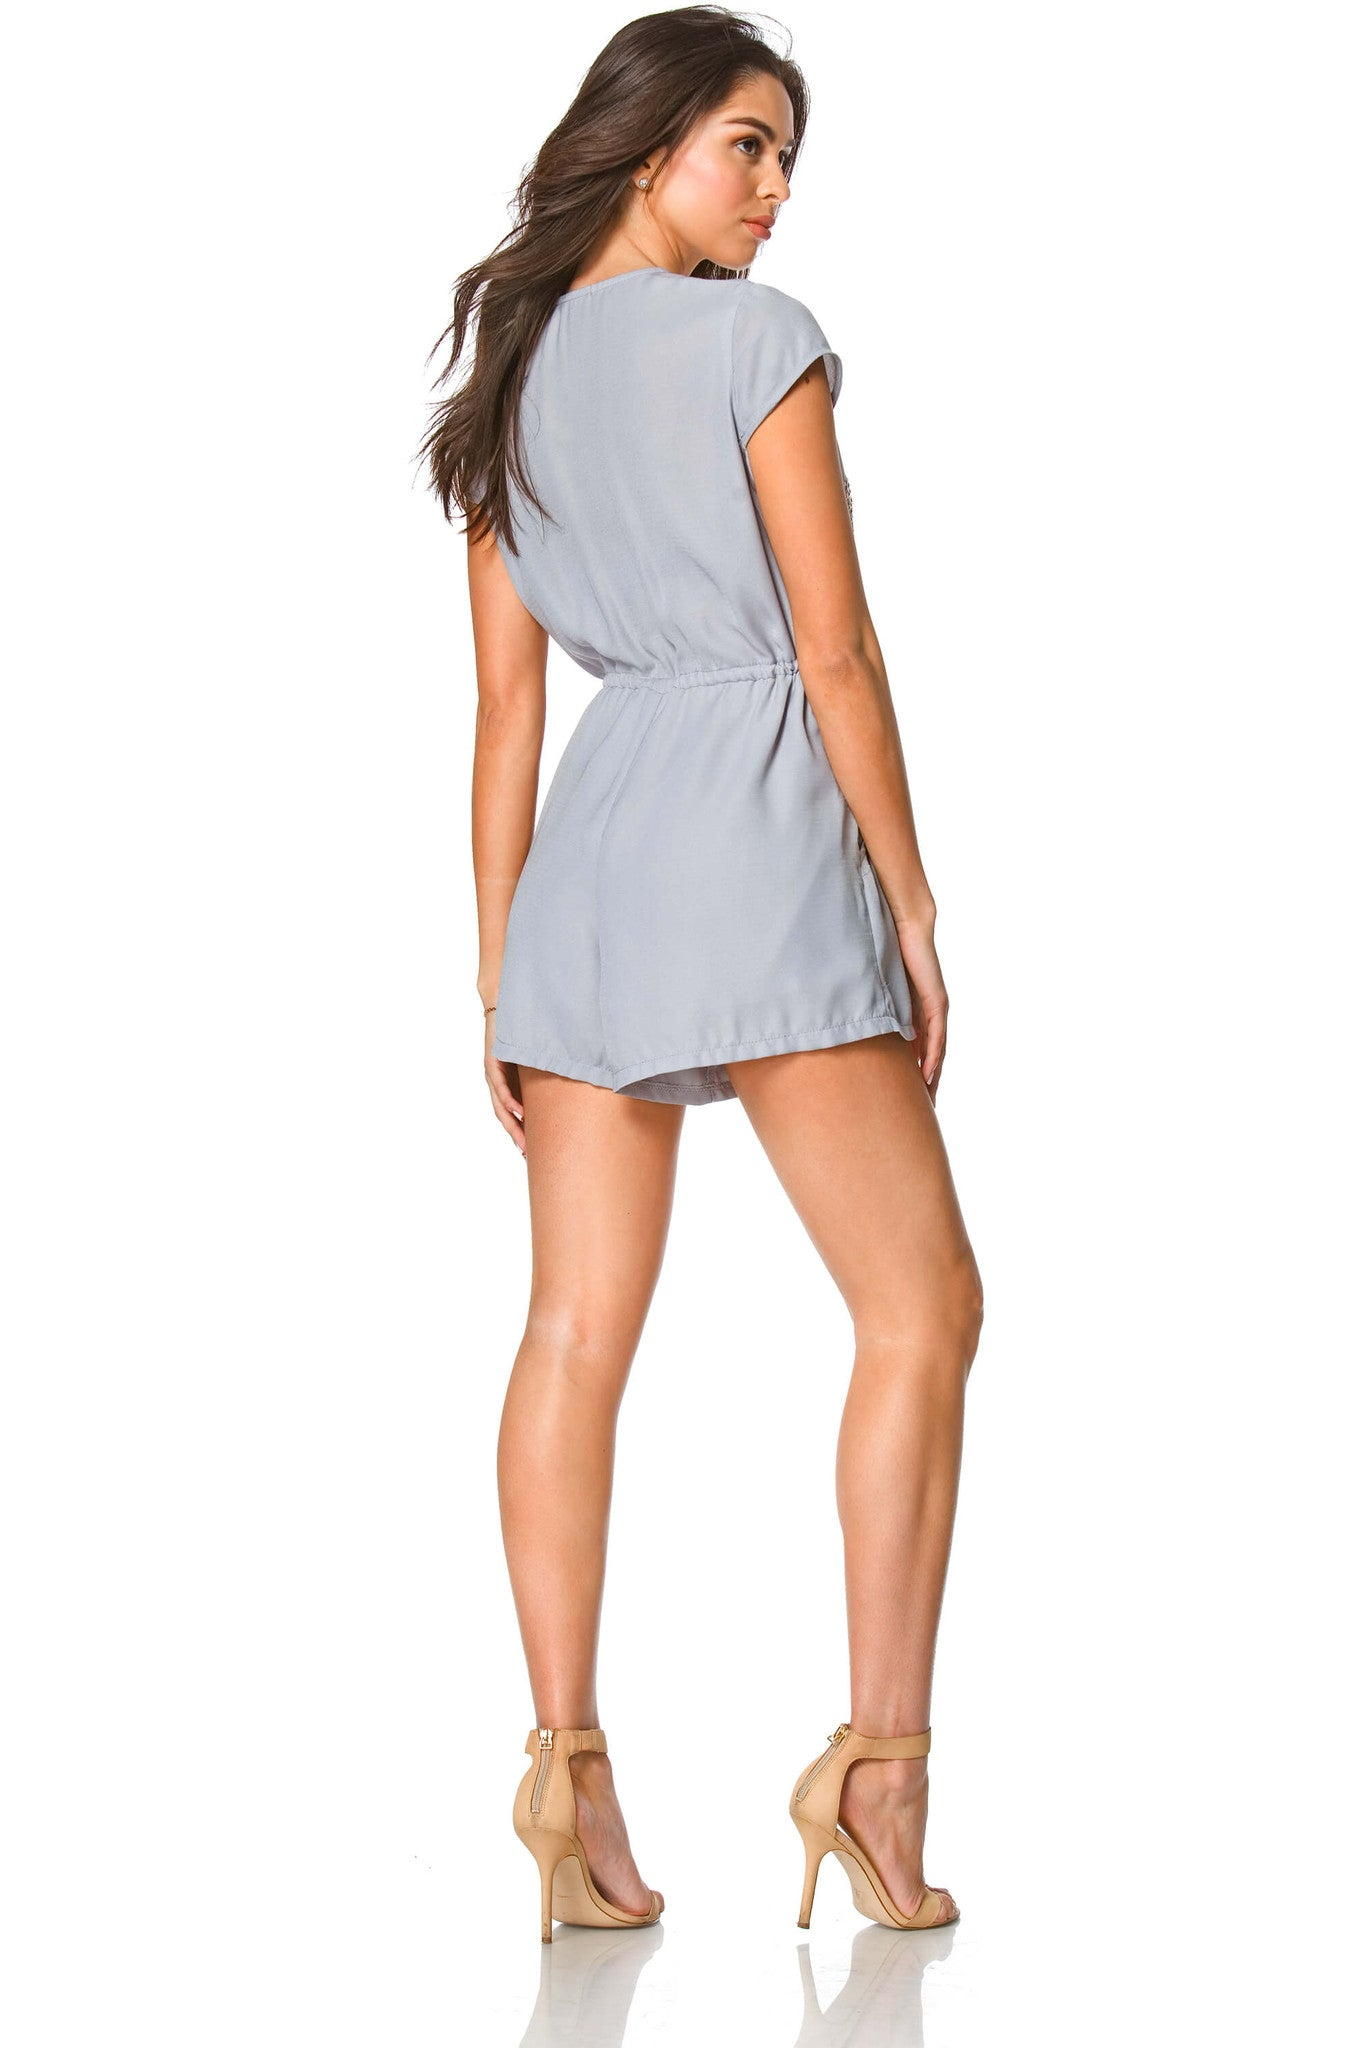 Ran Studded Kimono Romper in Heather, Dresses & Rompers - shoptoni.com